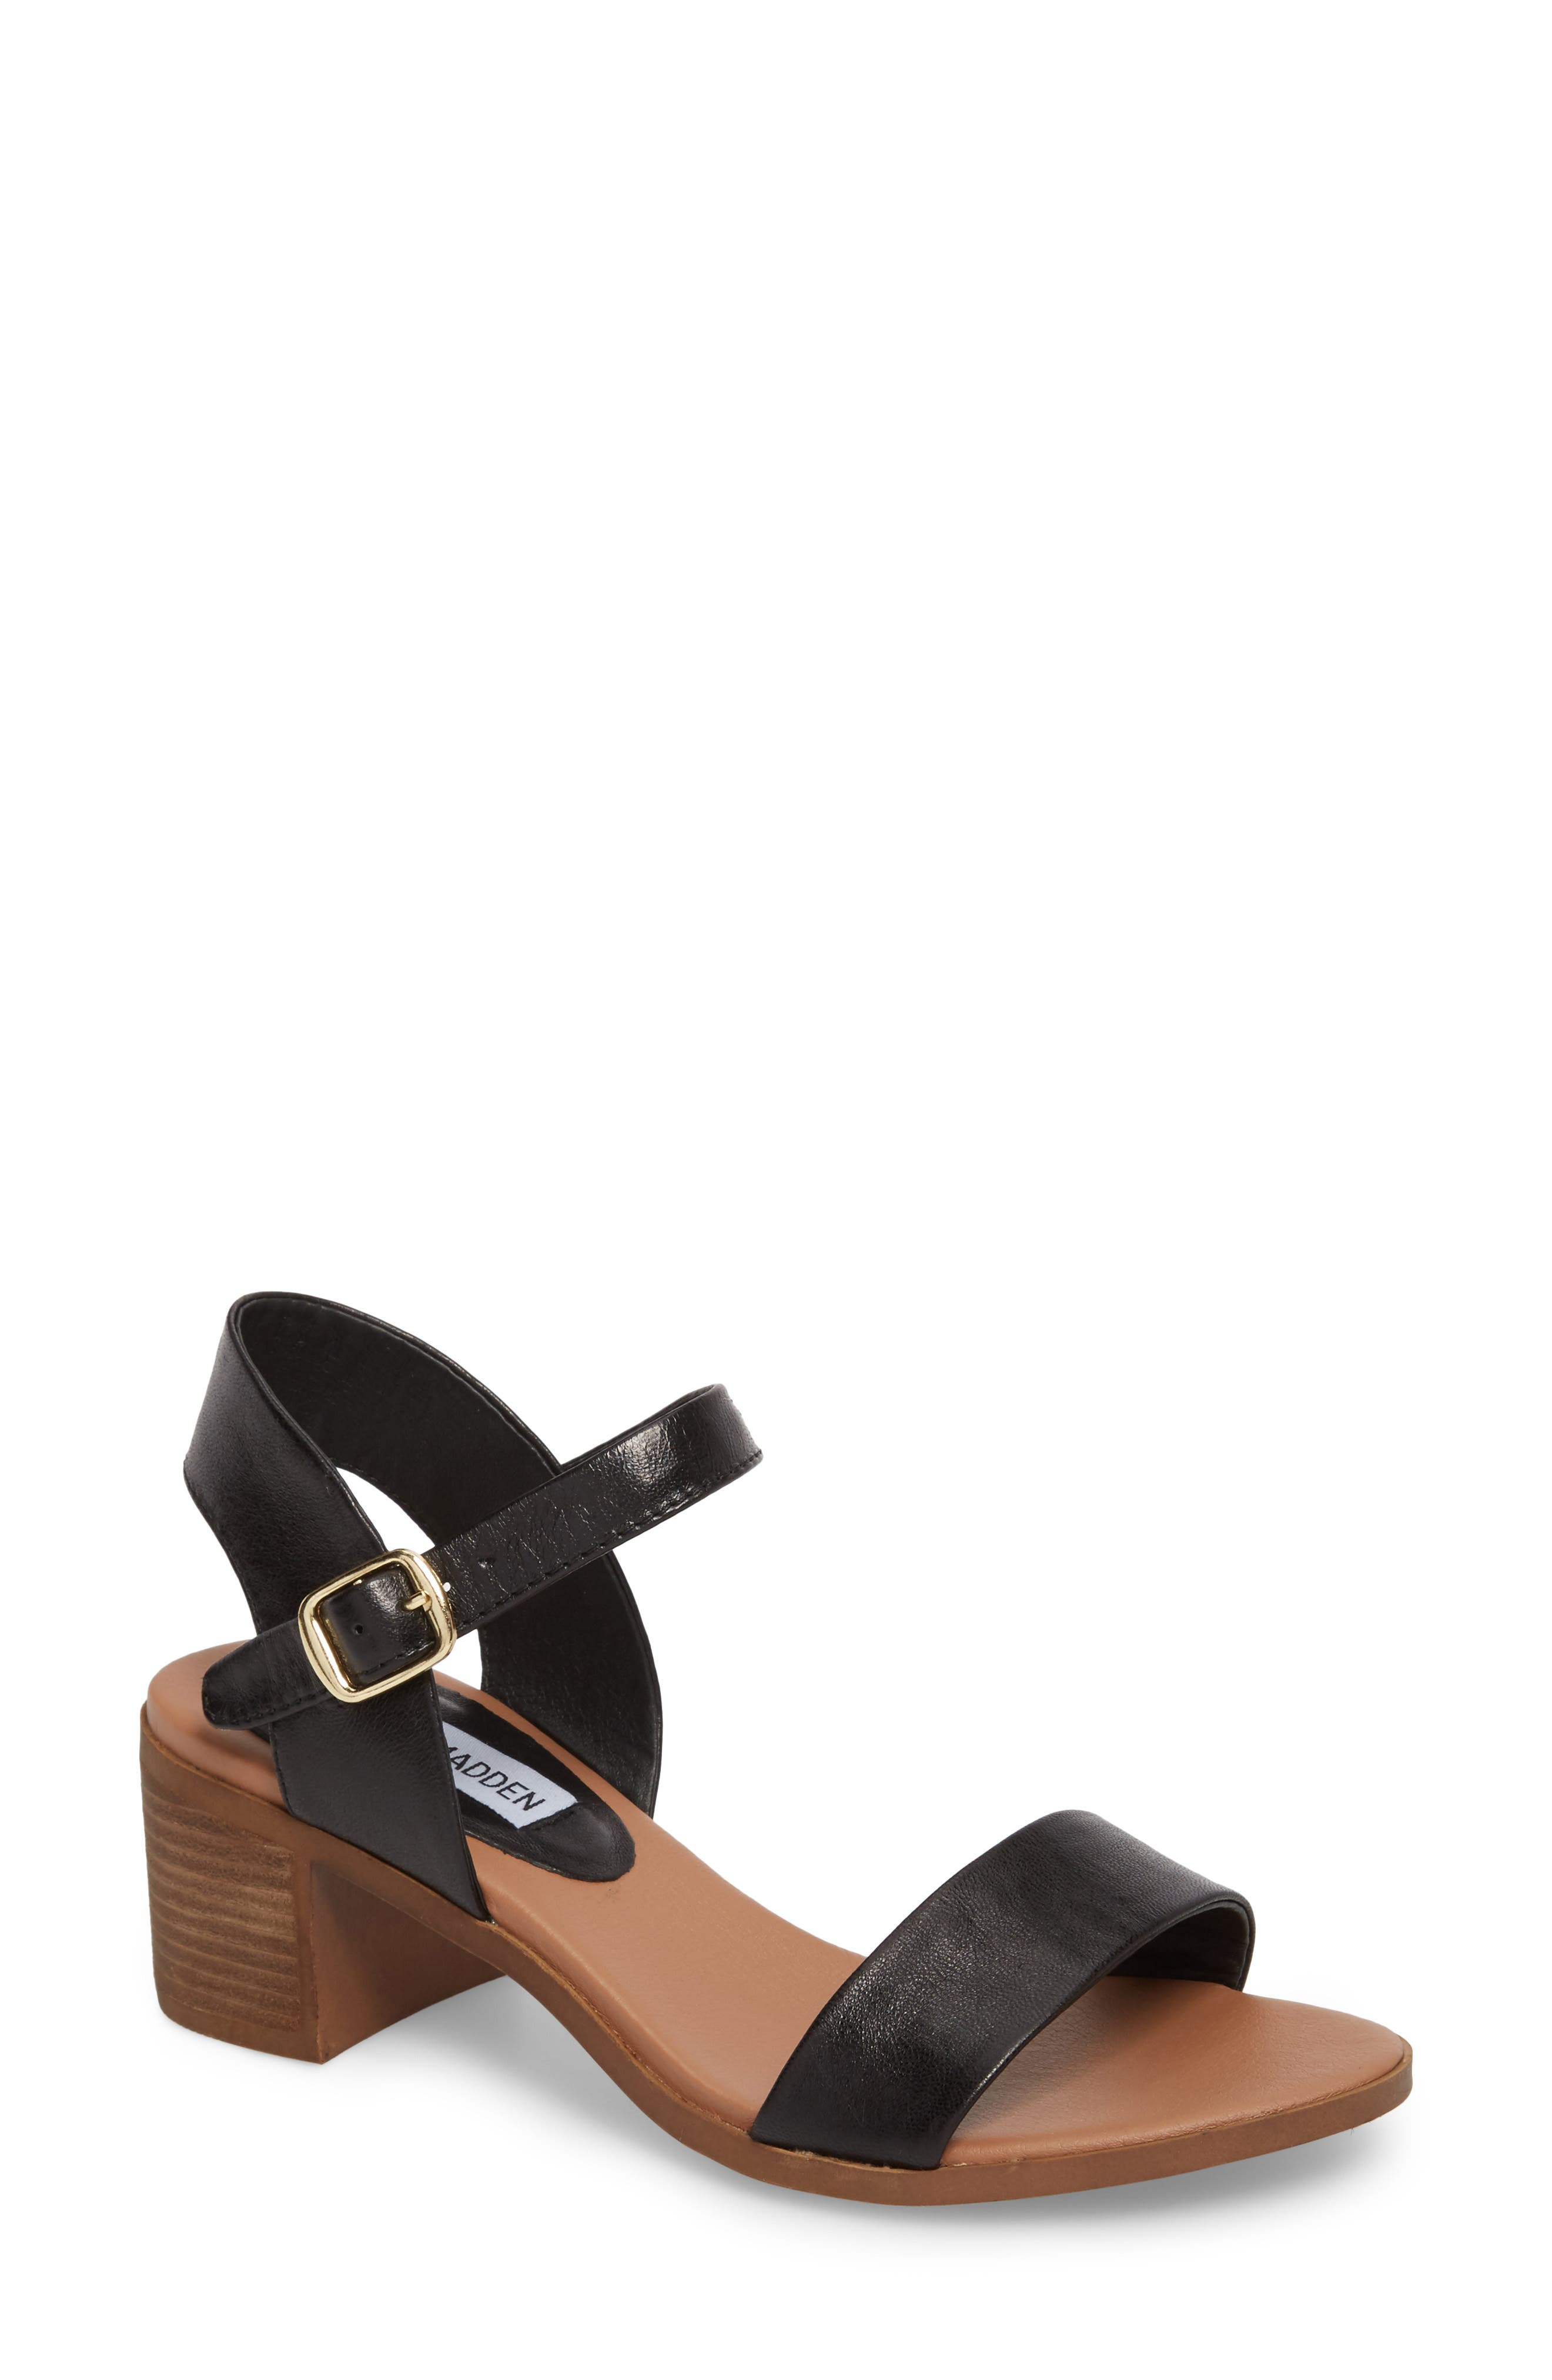 APRIL LEATHER STRAP MID-HEELED SANDALS